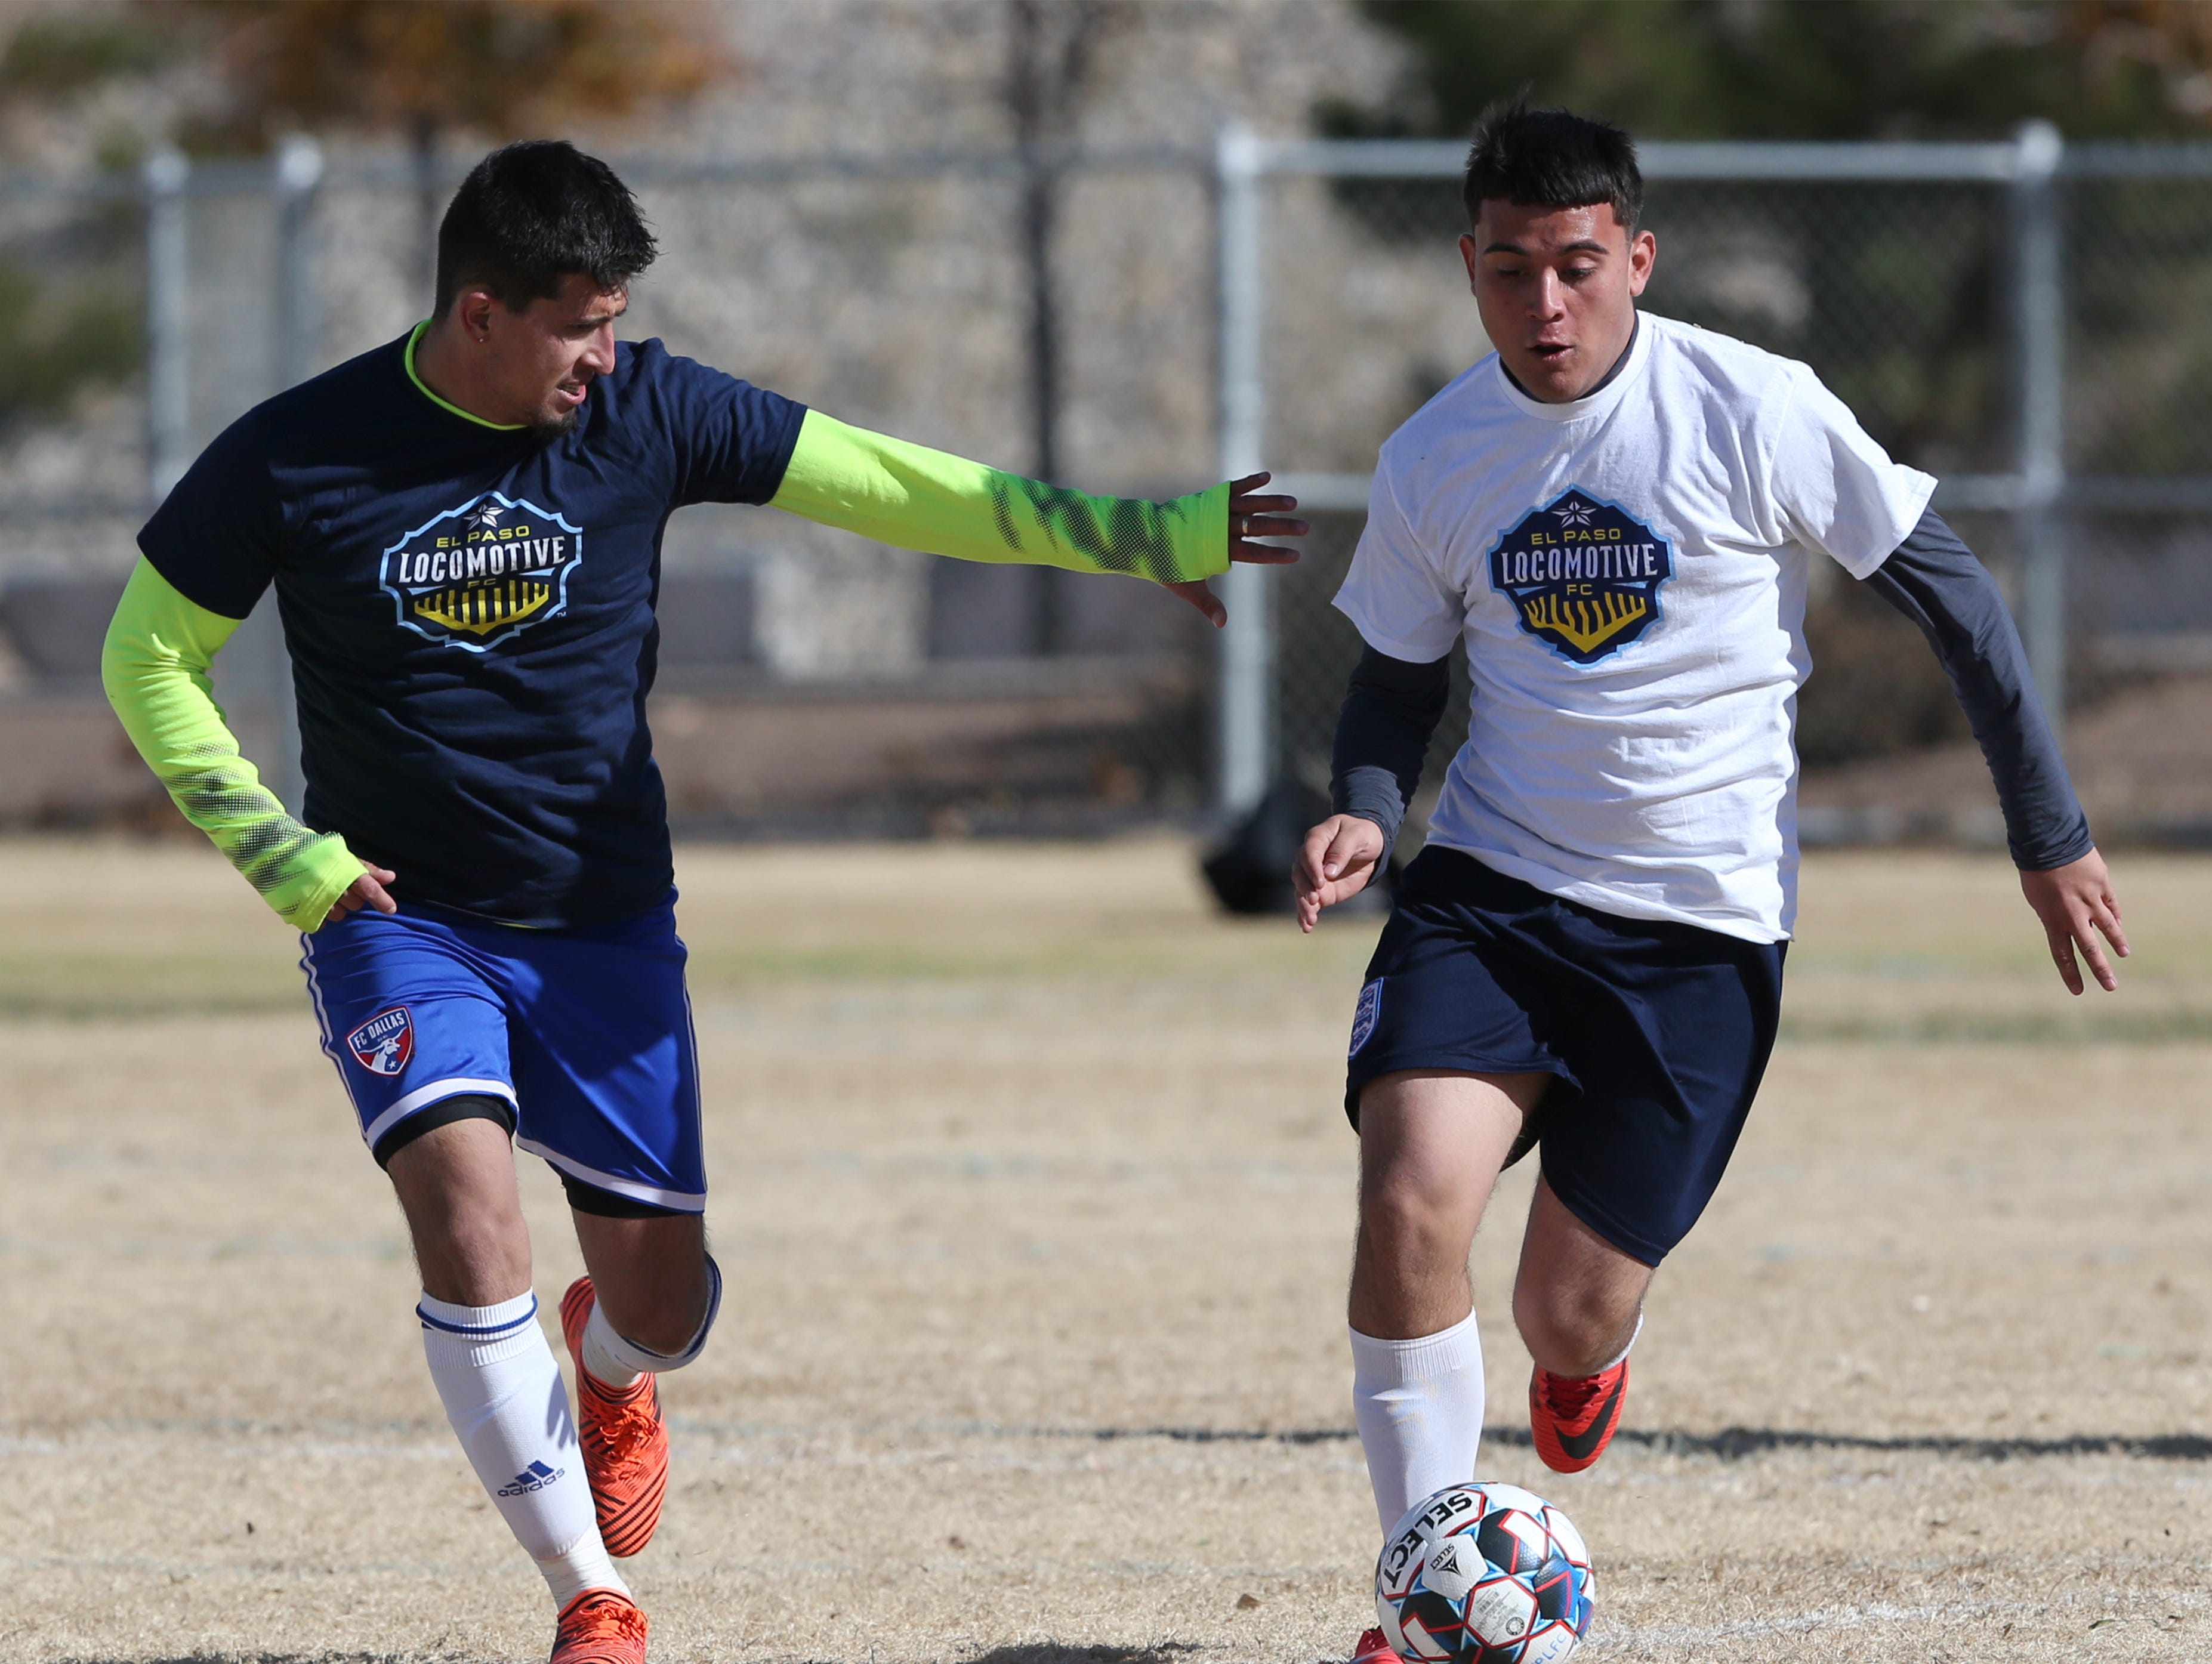 Soccer players strut their stuff on the field during a weekend tryout hosted by the El Paso Locomotive FC at Blackie Chesher Park in El Paso's Lower Valley.